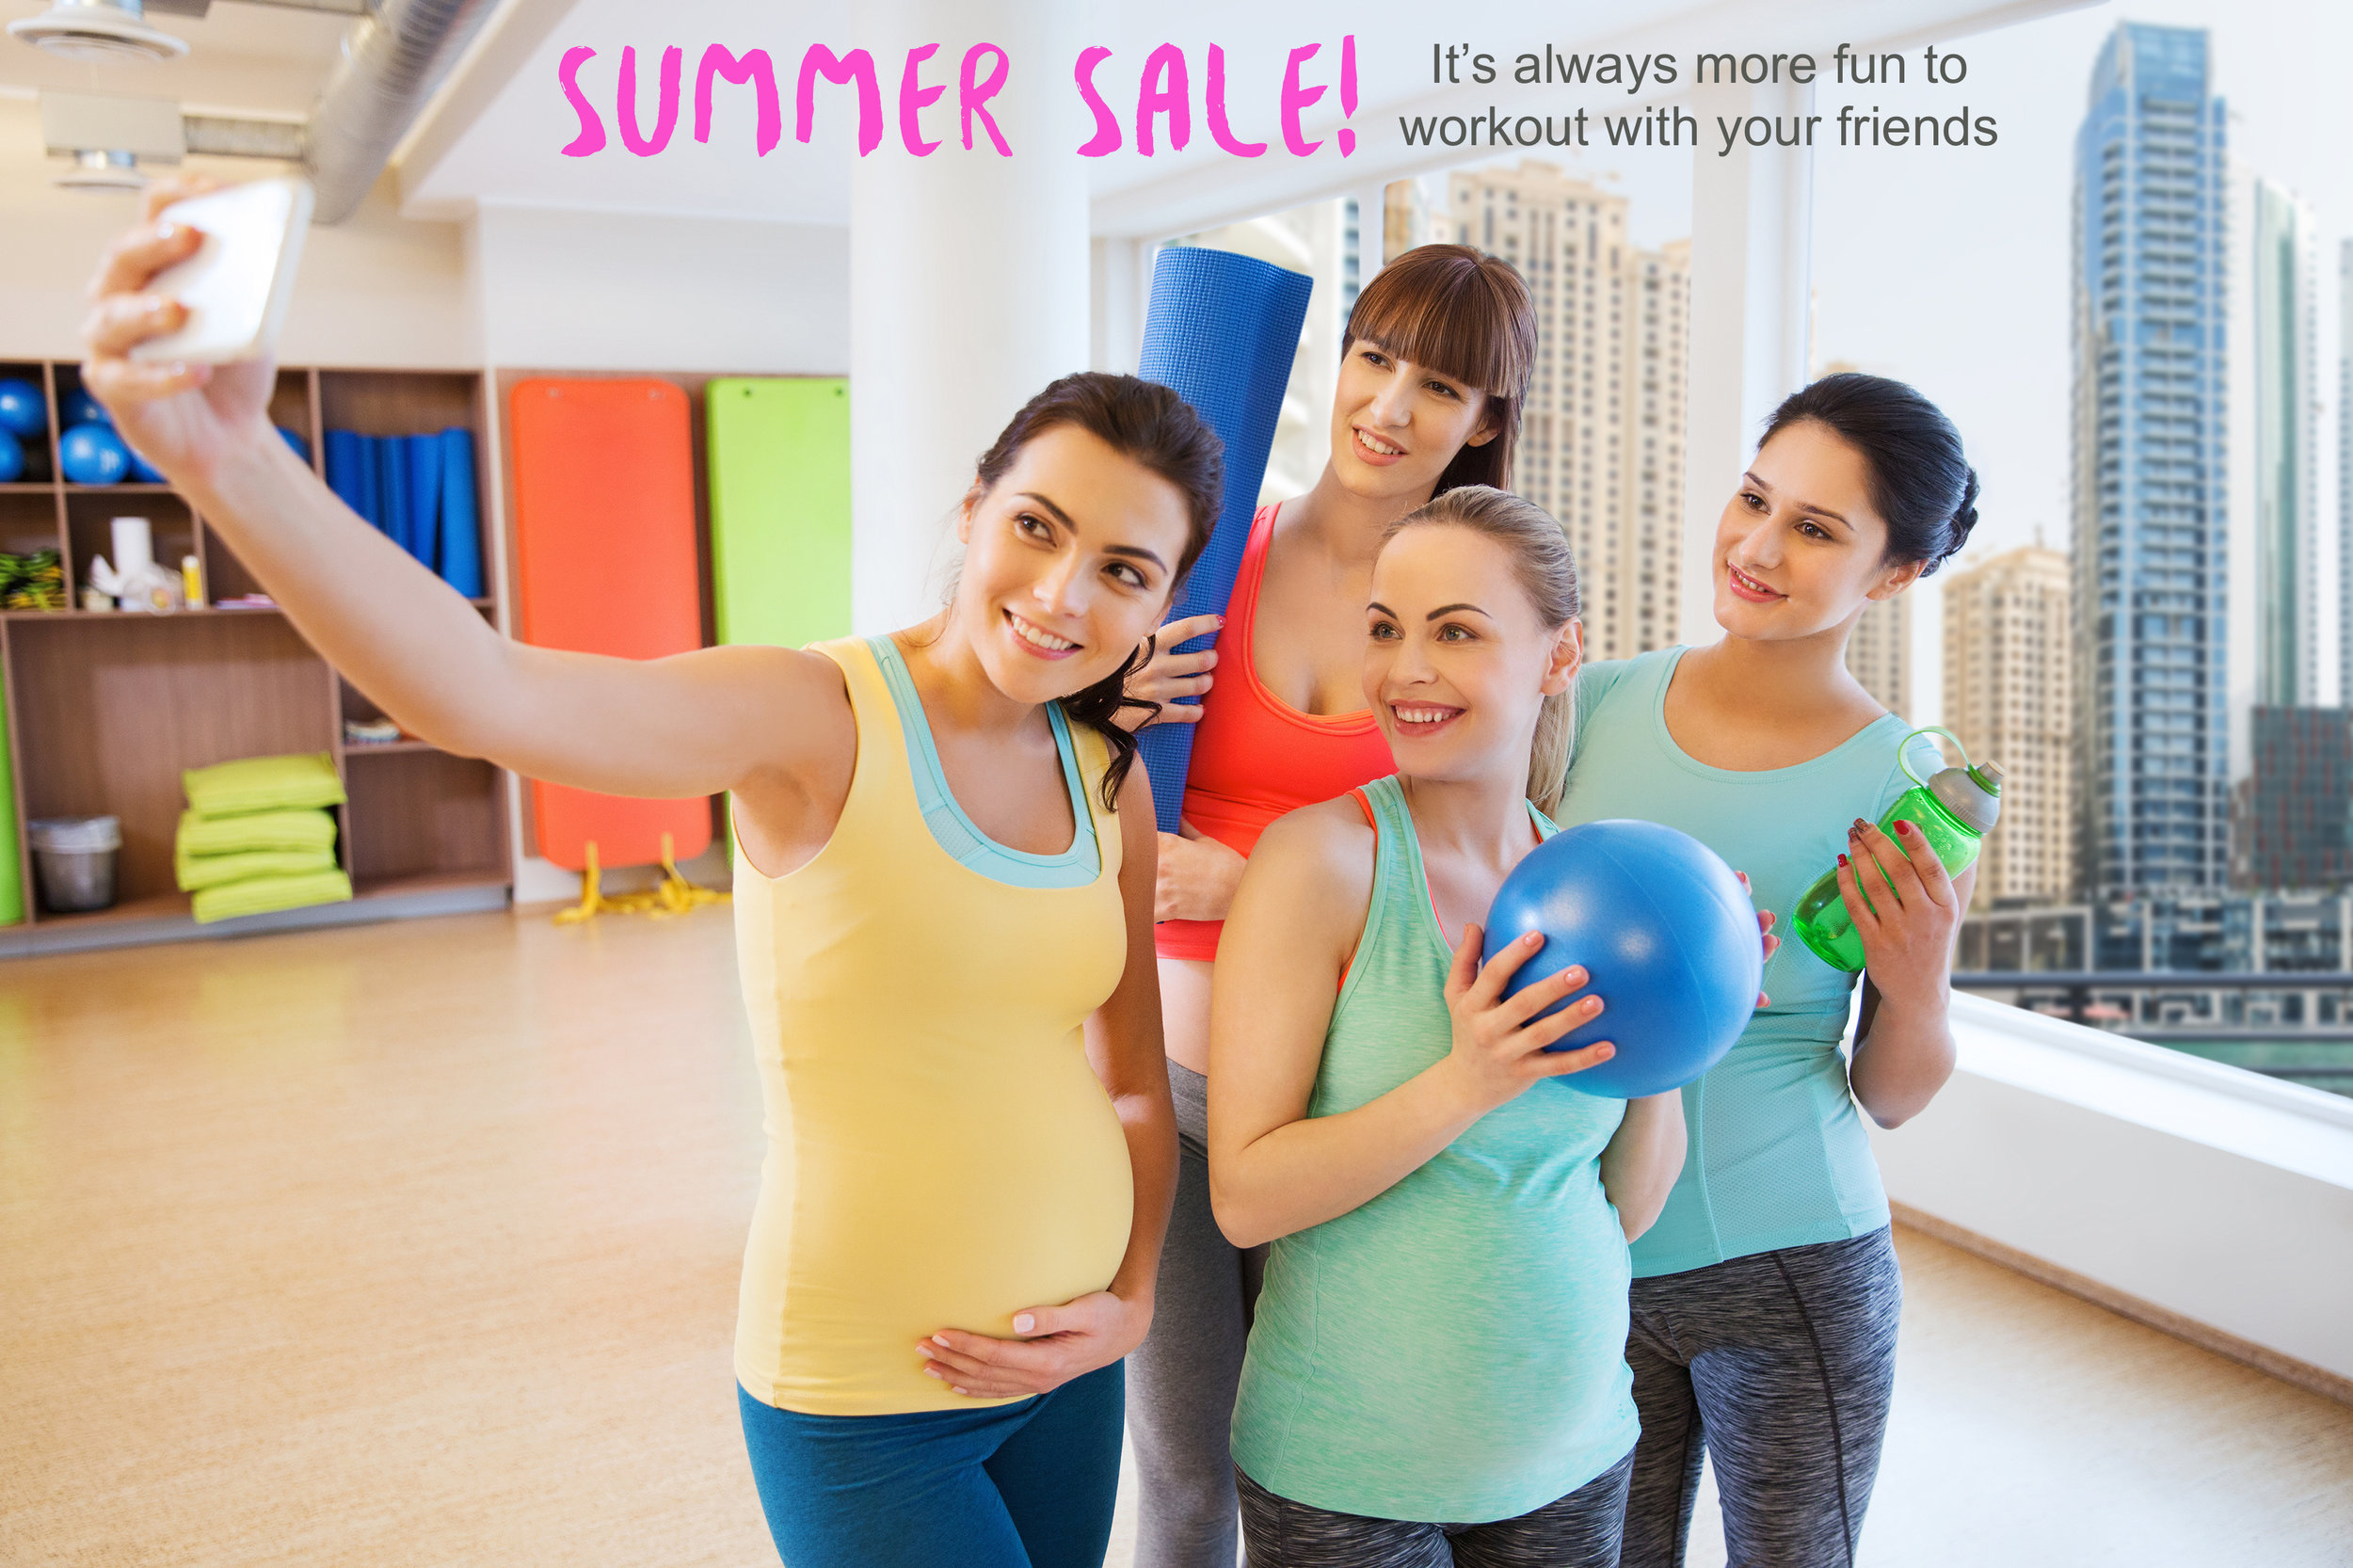 5MinuteBack Pregnancy Summer Sale - Refer a friend and get 1 month free.